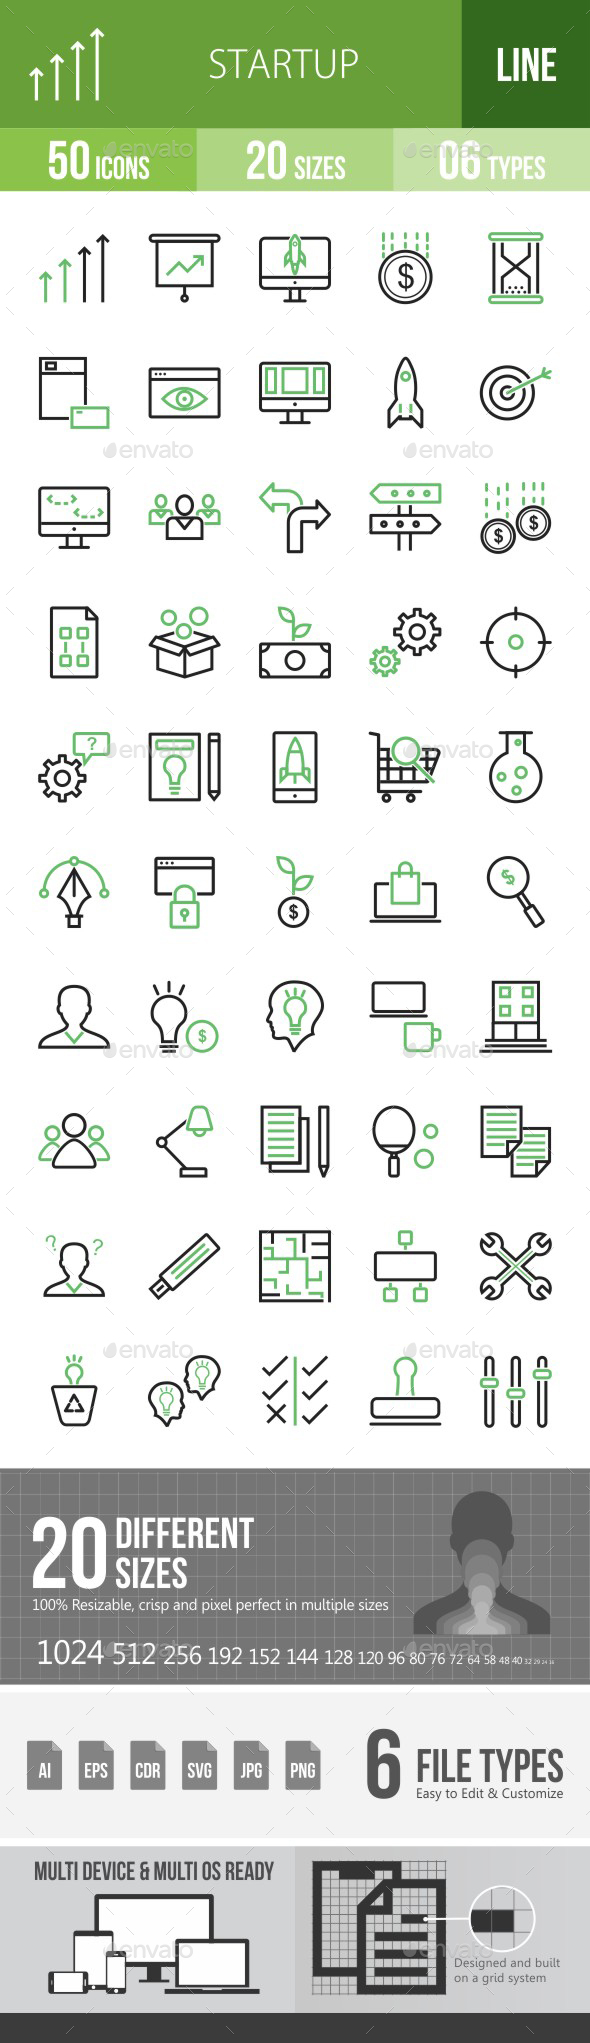 Startup Line Green & Black Icons - Icons